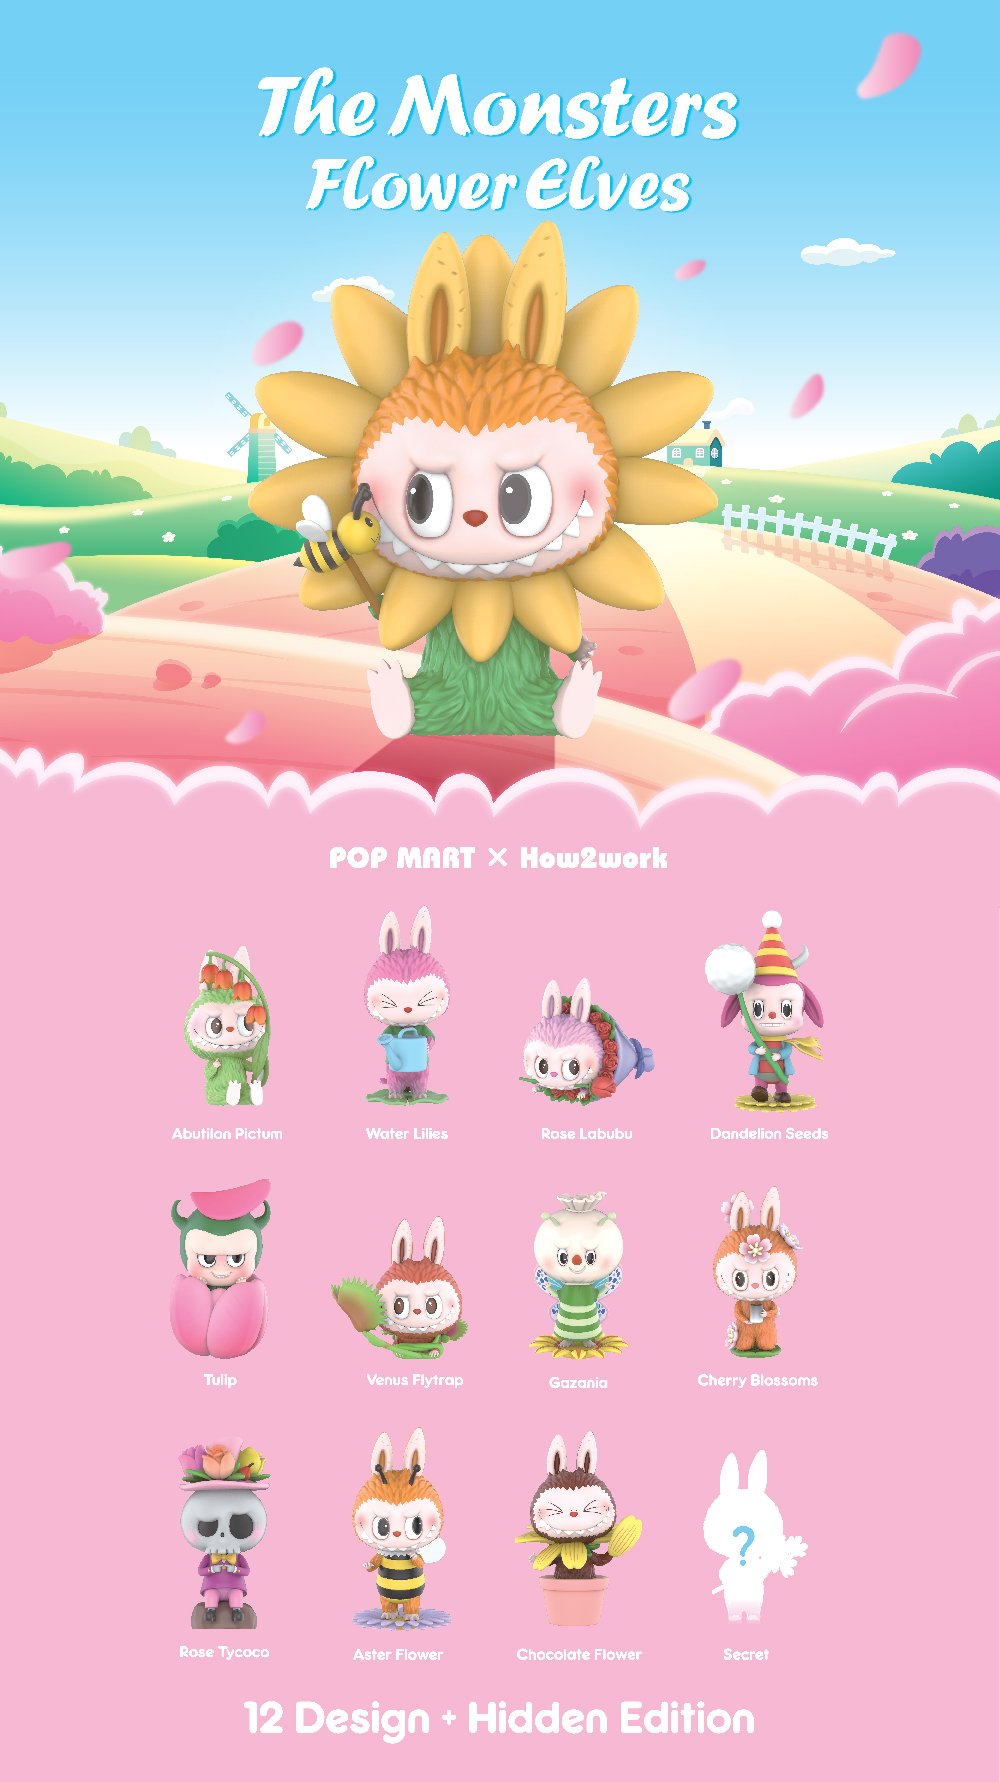 *Pre-order* The Monsters Flower Elves Blind Box Series by Kasing Lung x POP MART